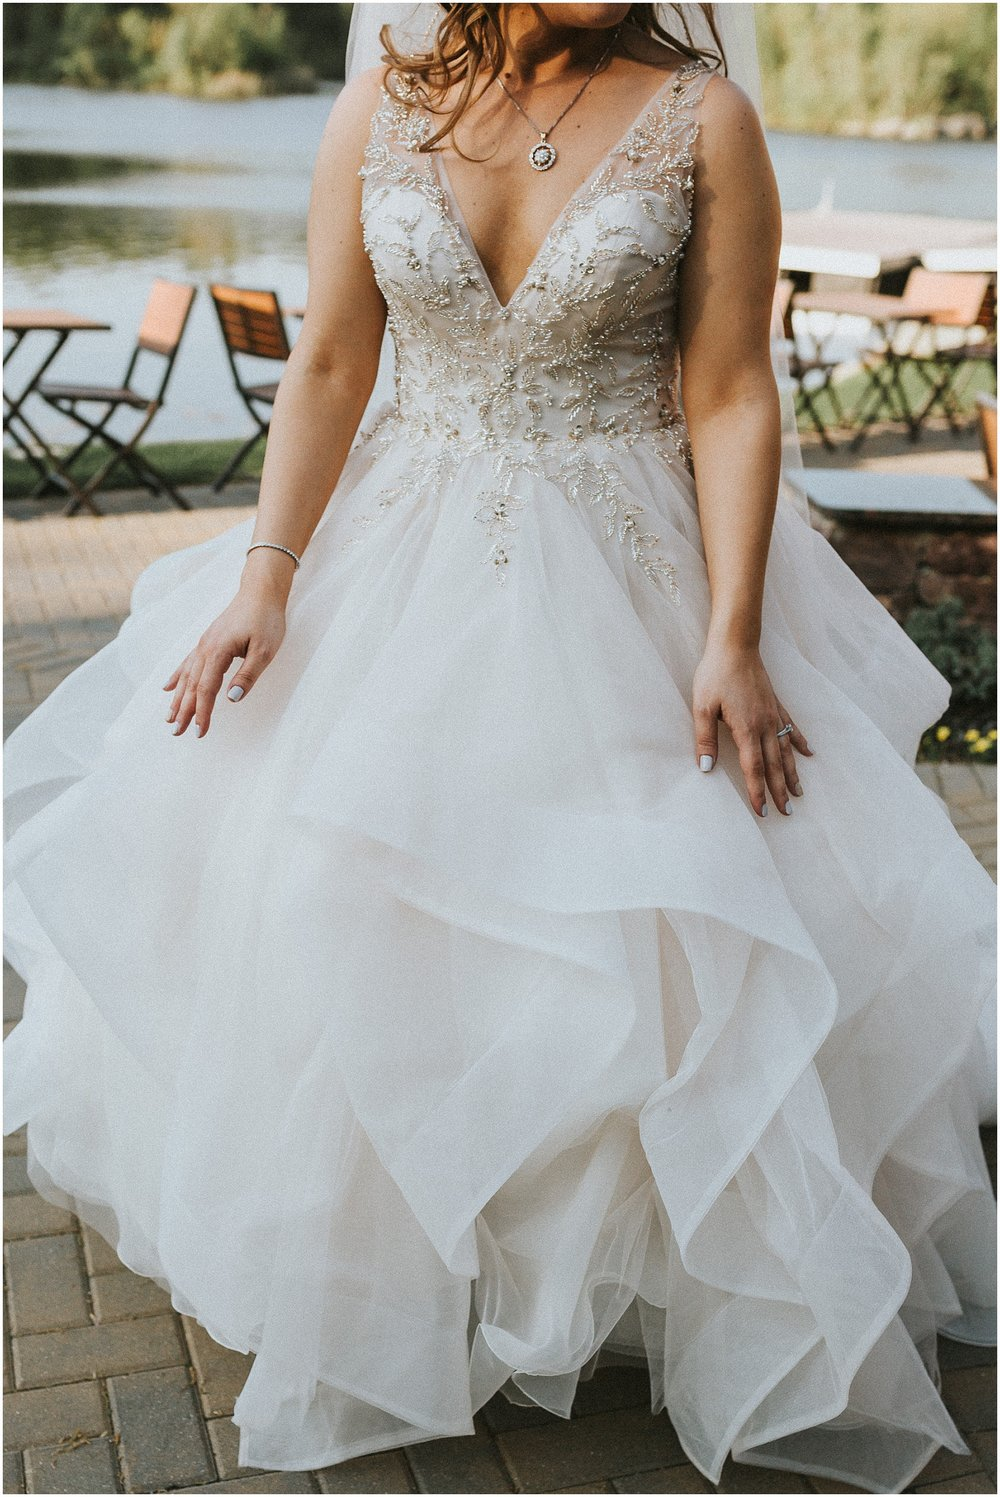 Photo of a Bride's dress at Rock Island Lake Club in New Jersey